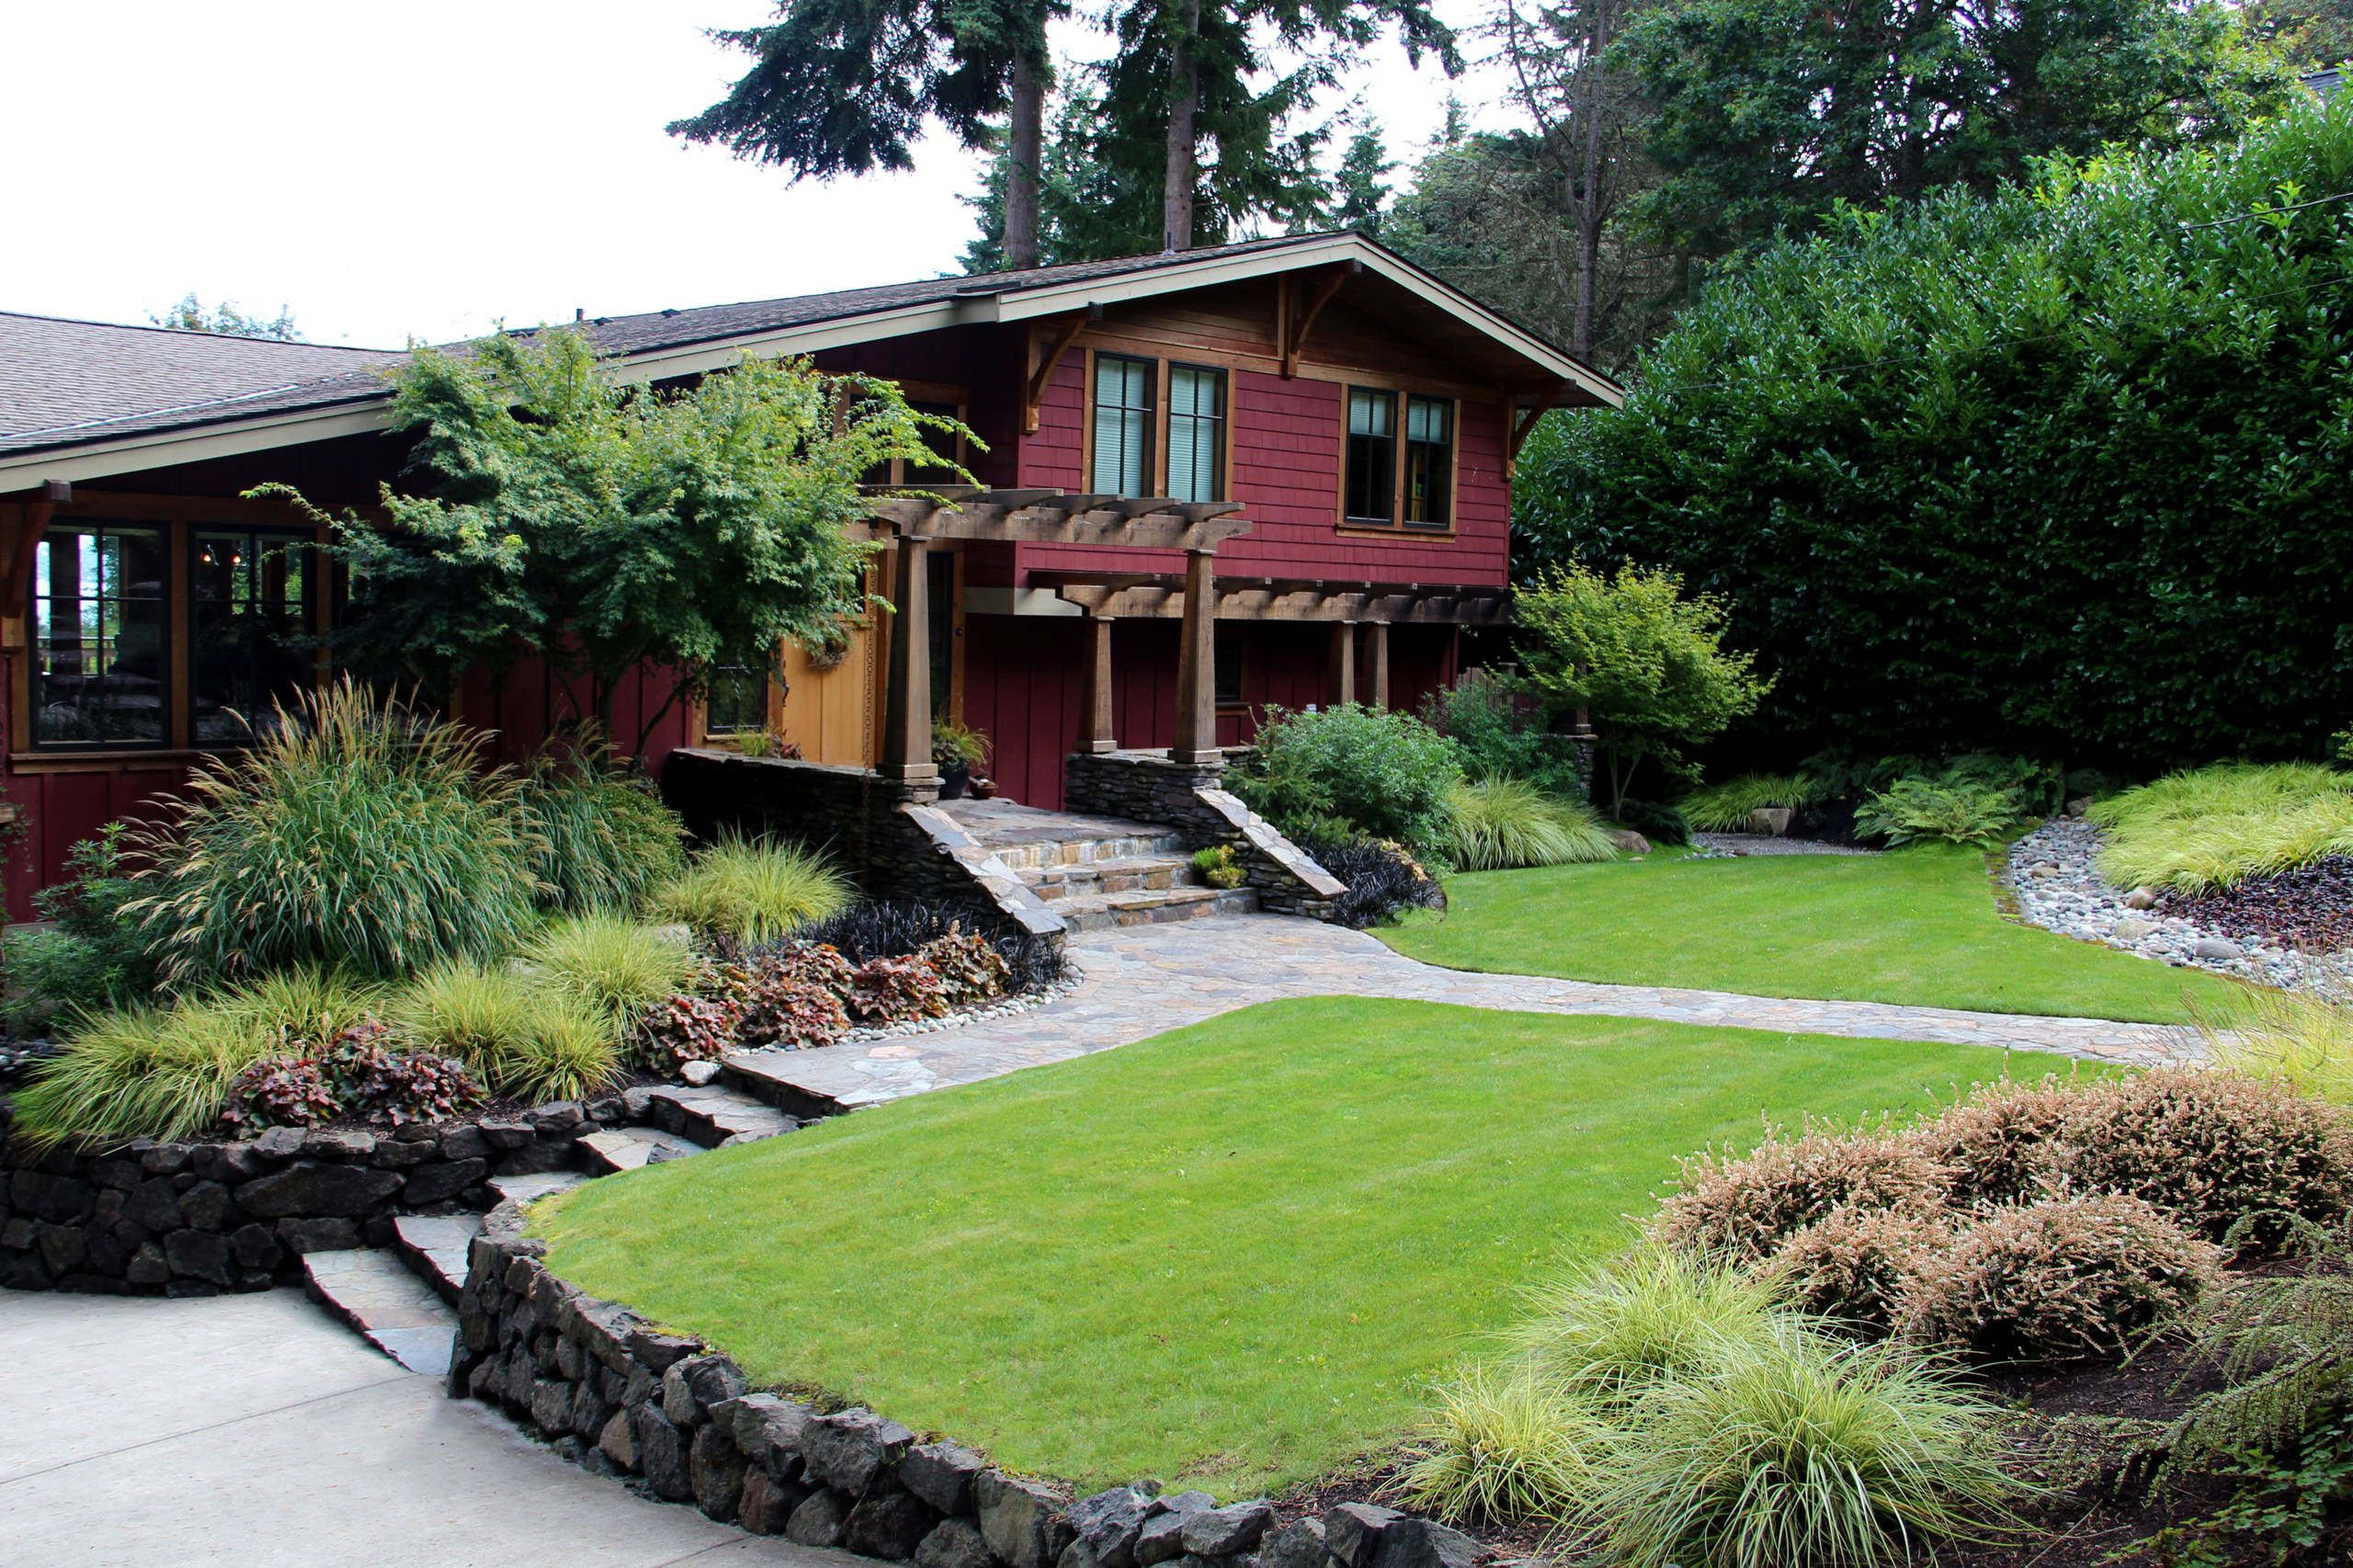 10 Awesome Landscaping Ideas For Split Level Homes 2020 on Split Garden Ideas id=95556